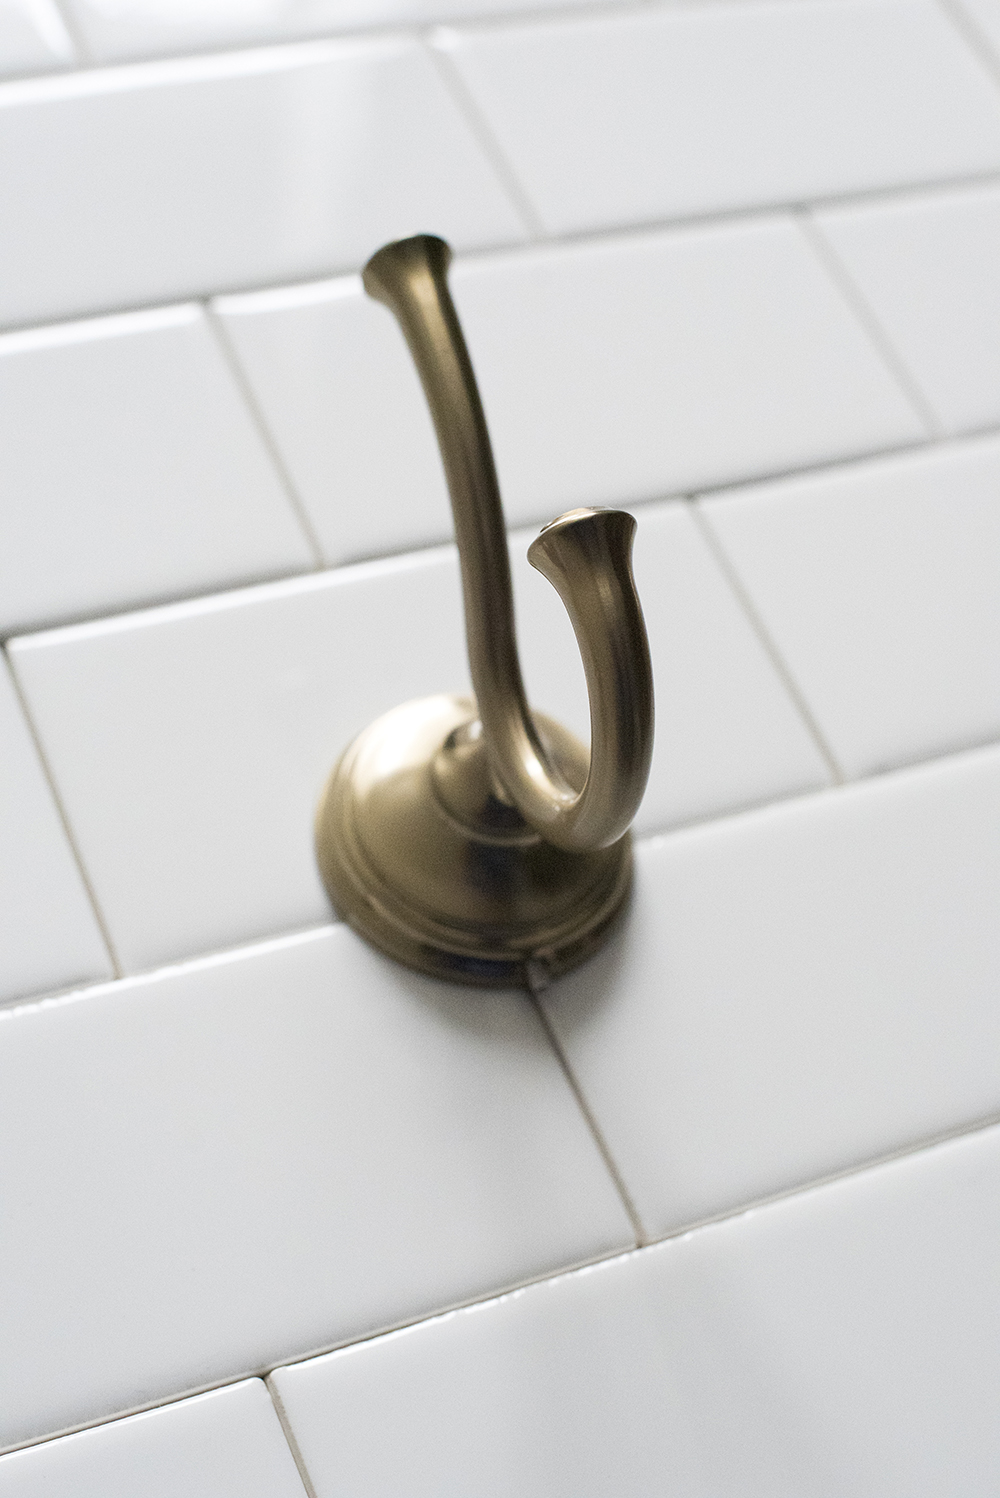 How to Choose Cohesive Bathroom Plumbing Fixtures - roomfortuesday.com